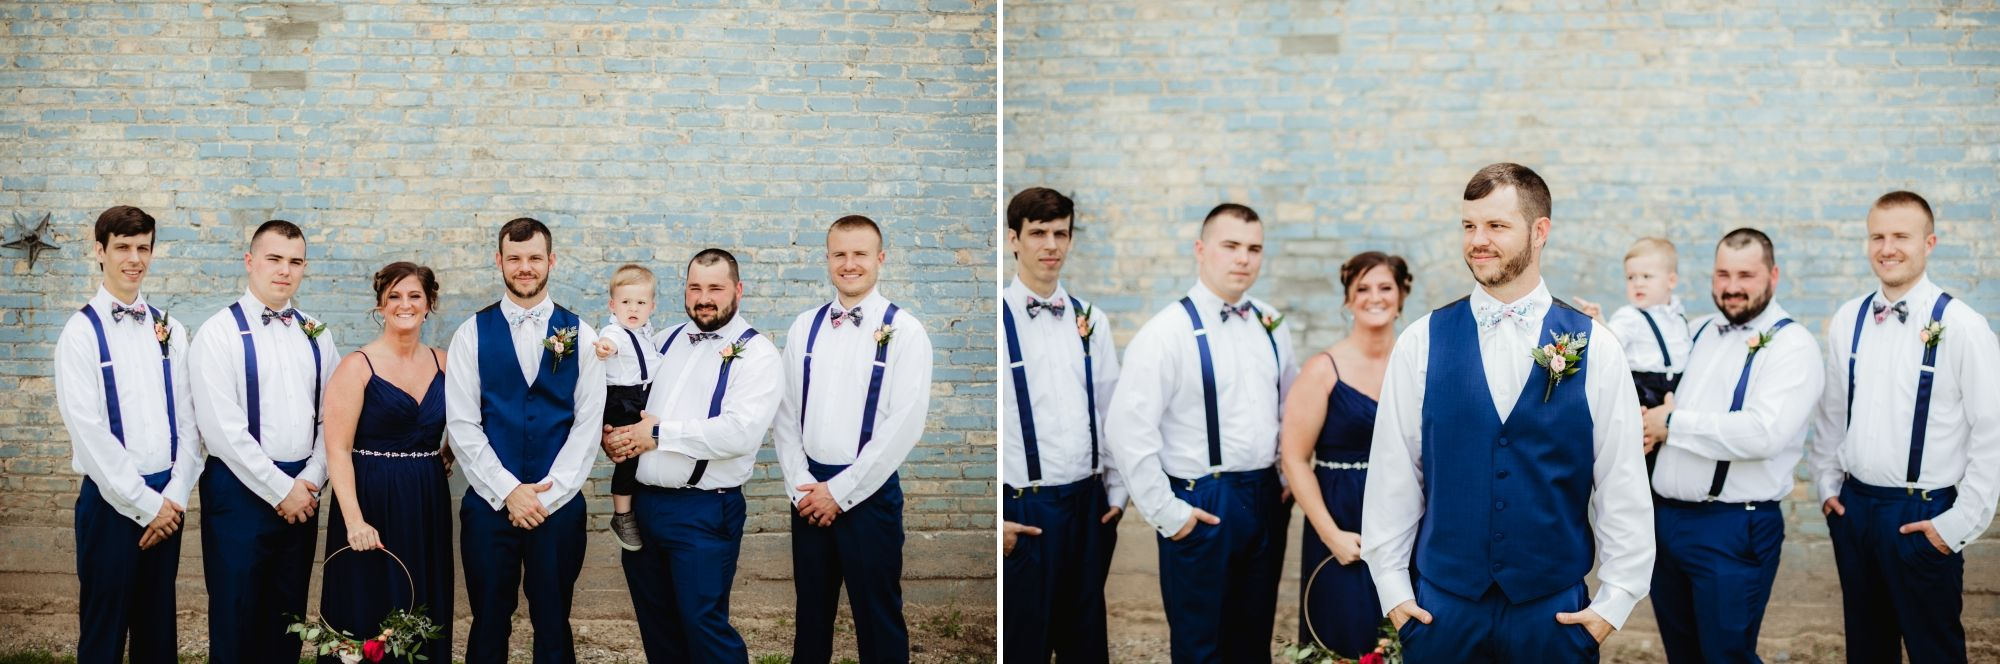 Groom, groomsman, one woman, and ring bearer in front of blue bricks. They're wearing navy and white.